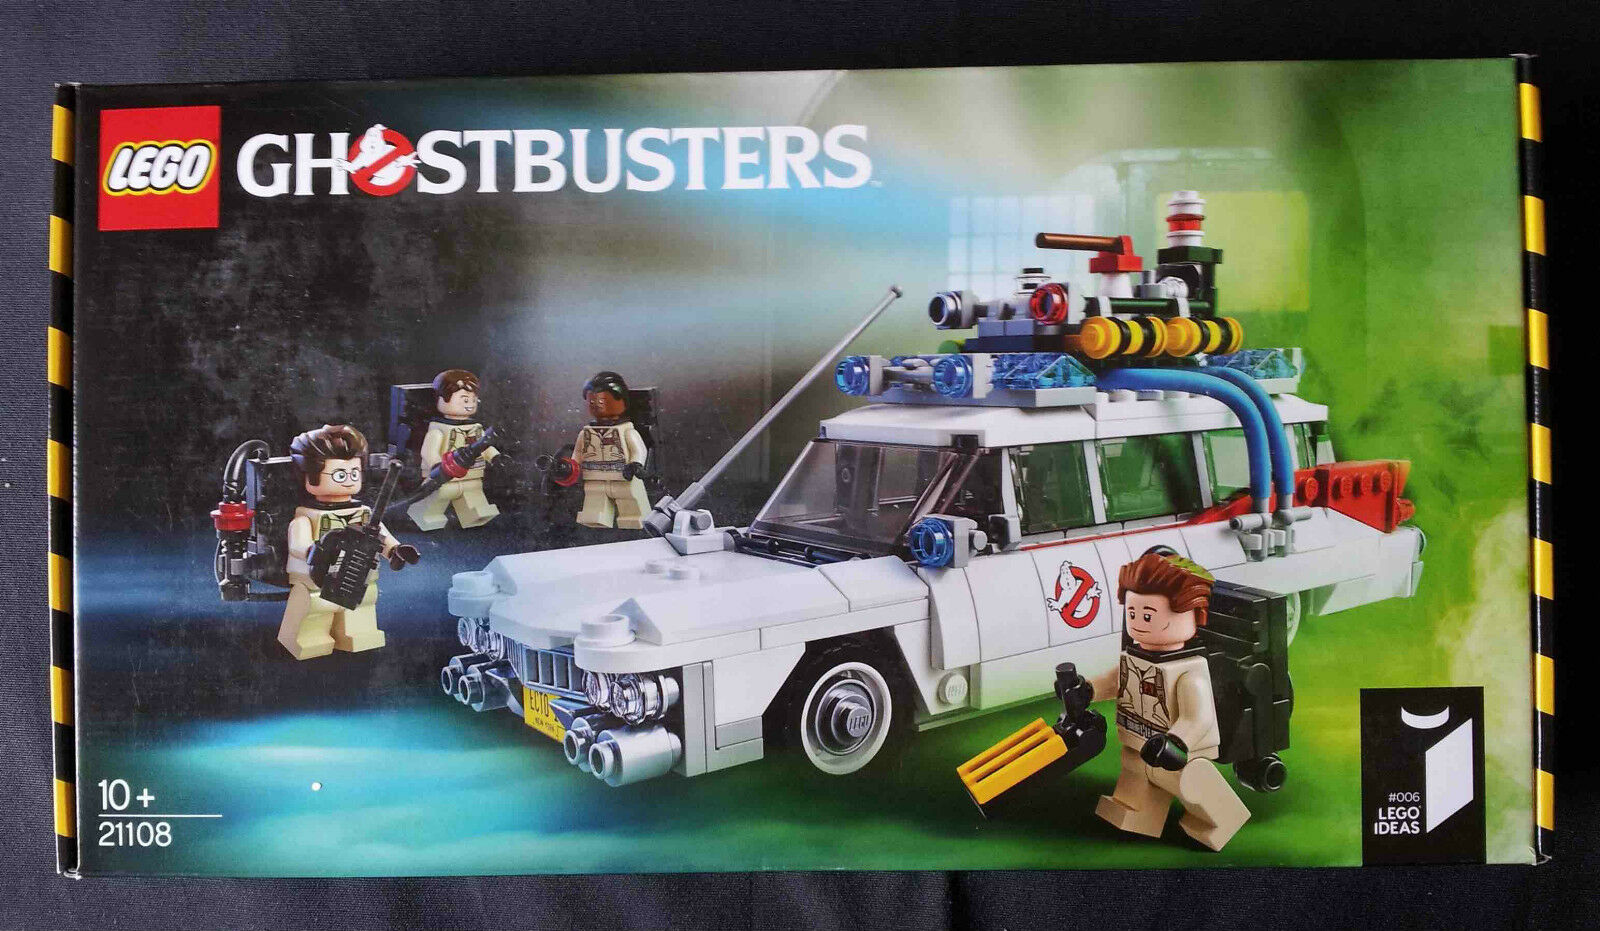 LEGO IDEAS 21108 - GHOSTBUSTERS ECTO-1  NUEVO SELLADO / NEW SEALED